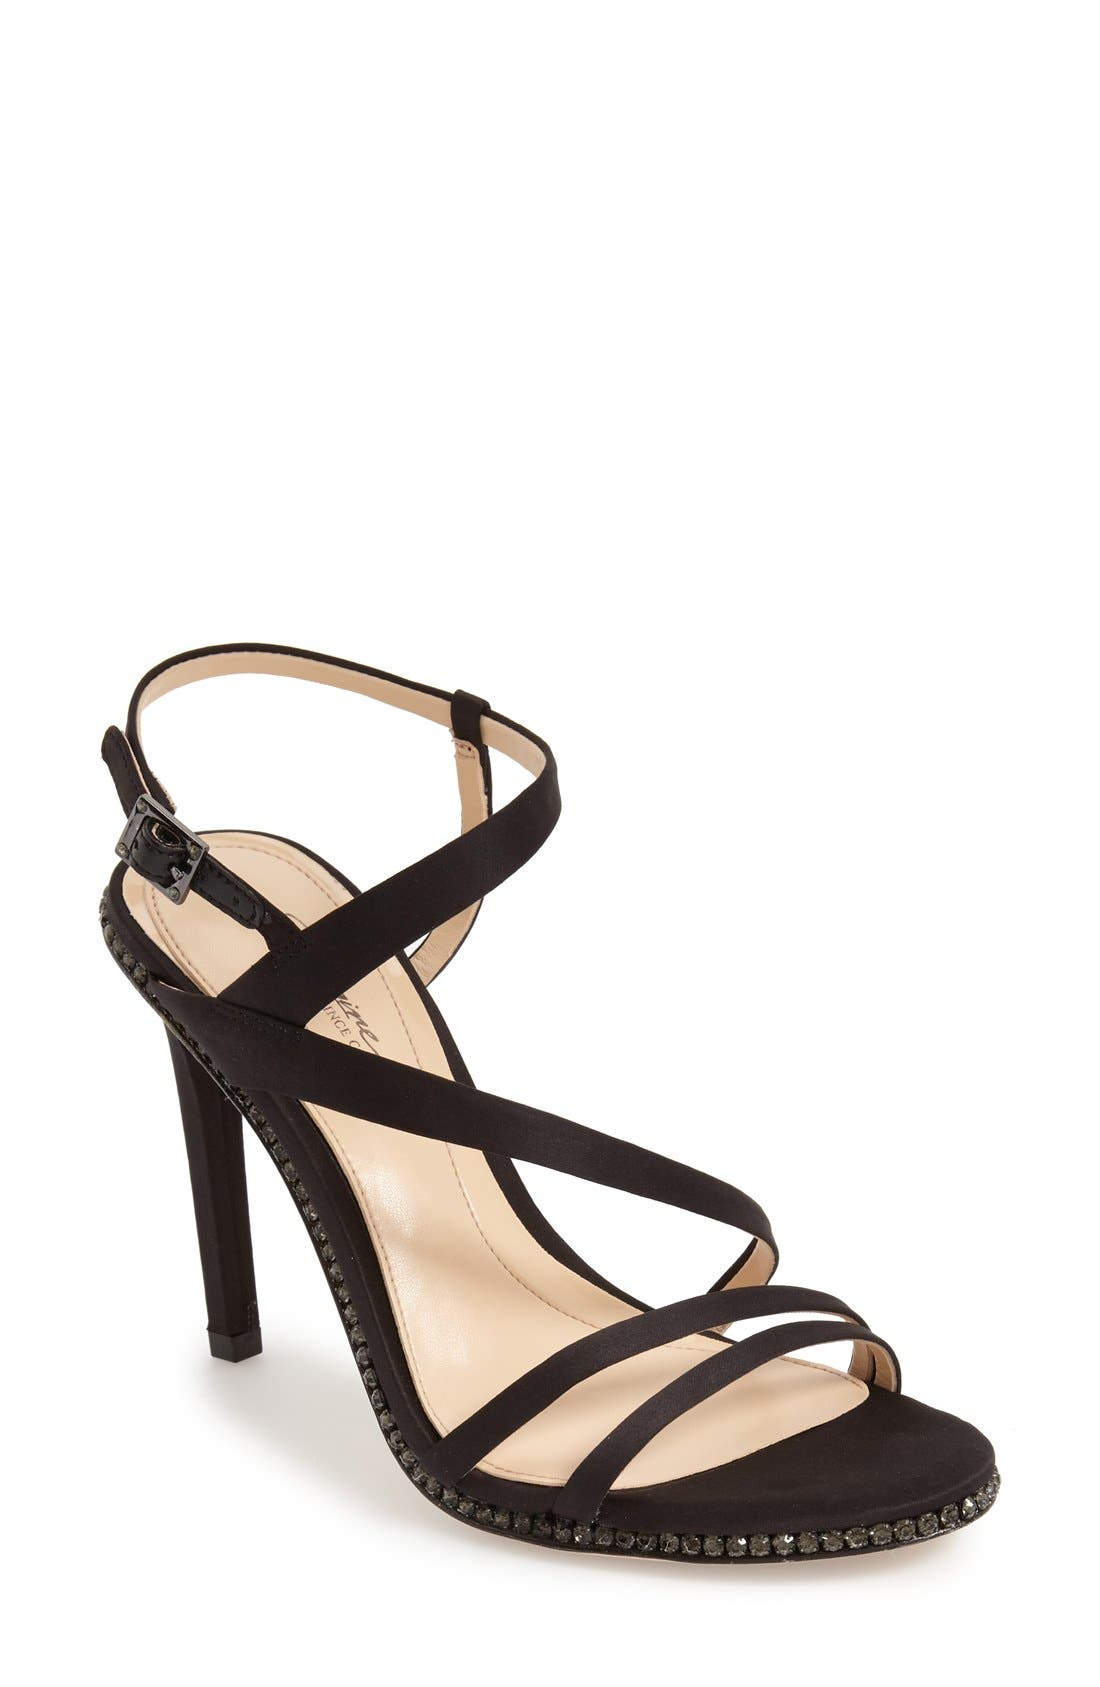 Main Image - Imagine Vince Camuto 'Gian' Strappy Sandal (Women)